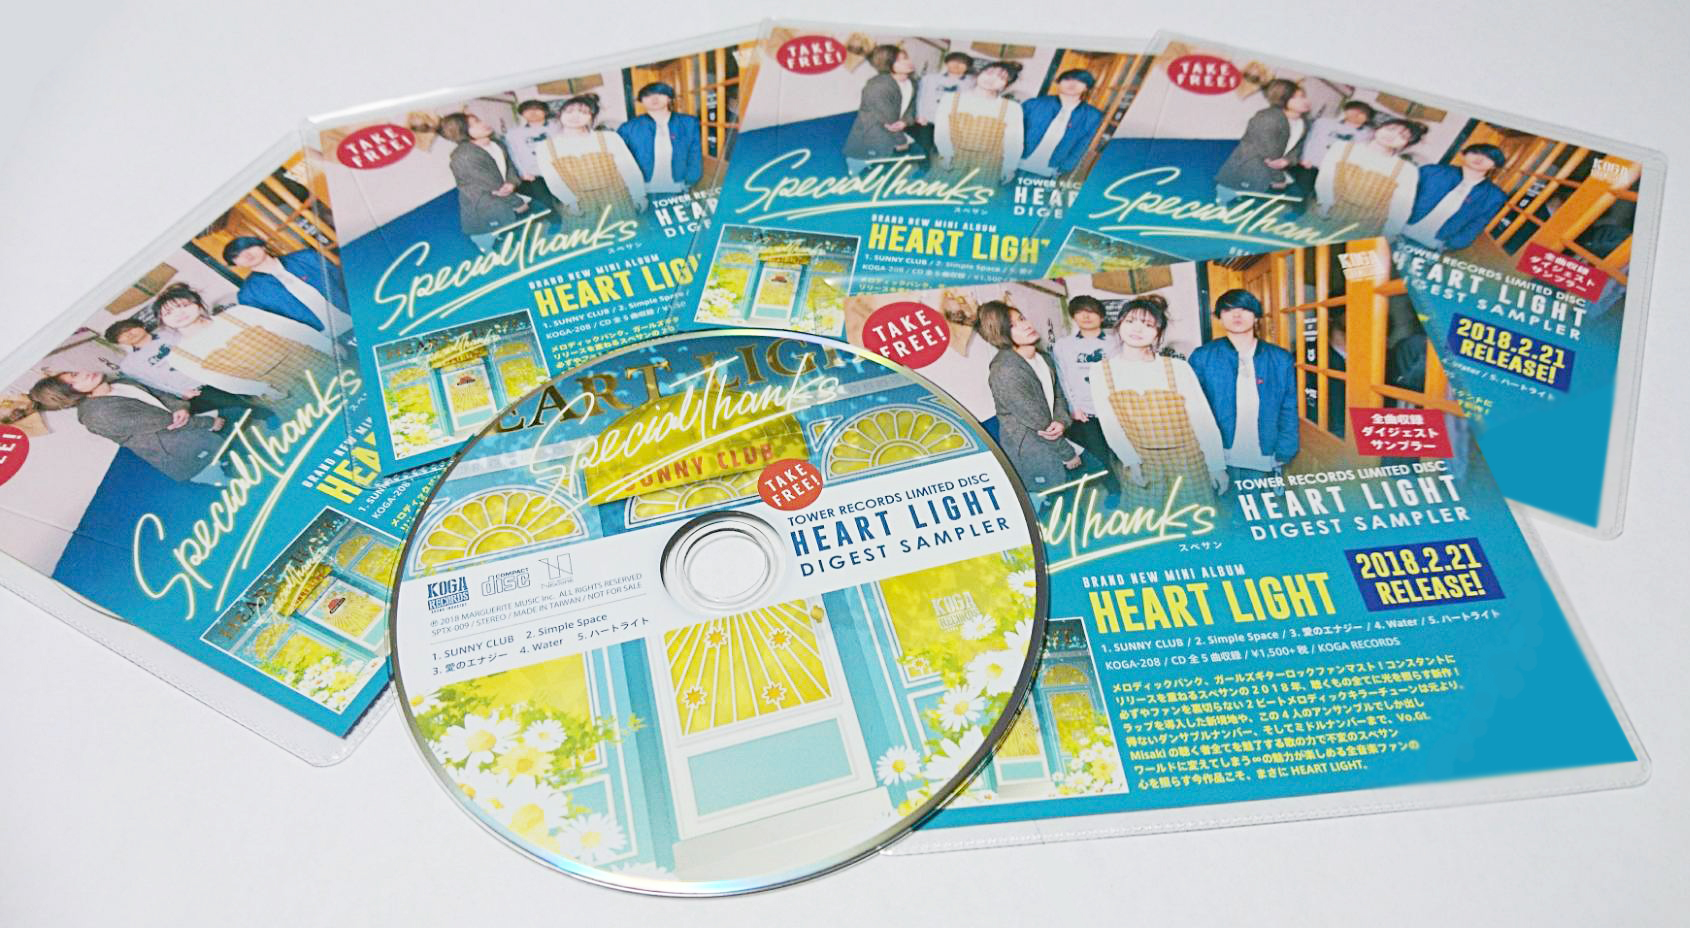 JRock247-SpecialThanks-Heart-Light-Tower-records-sampler-1